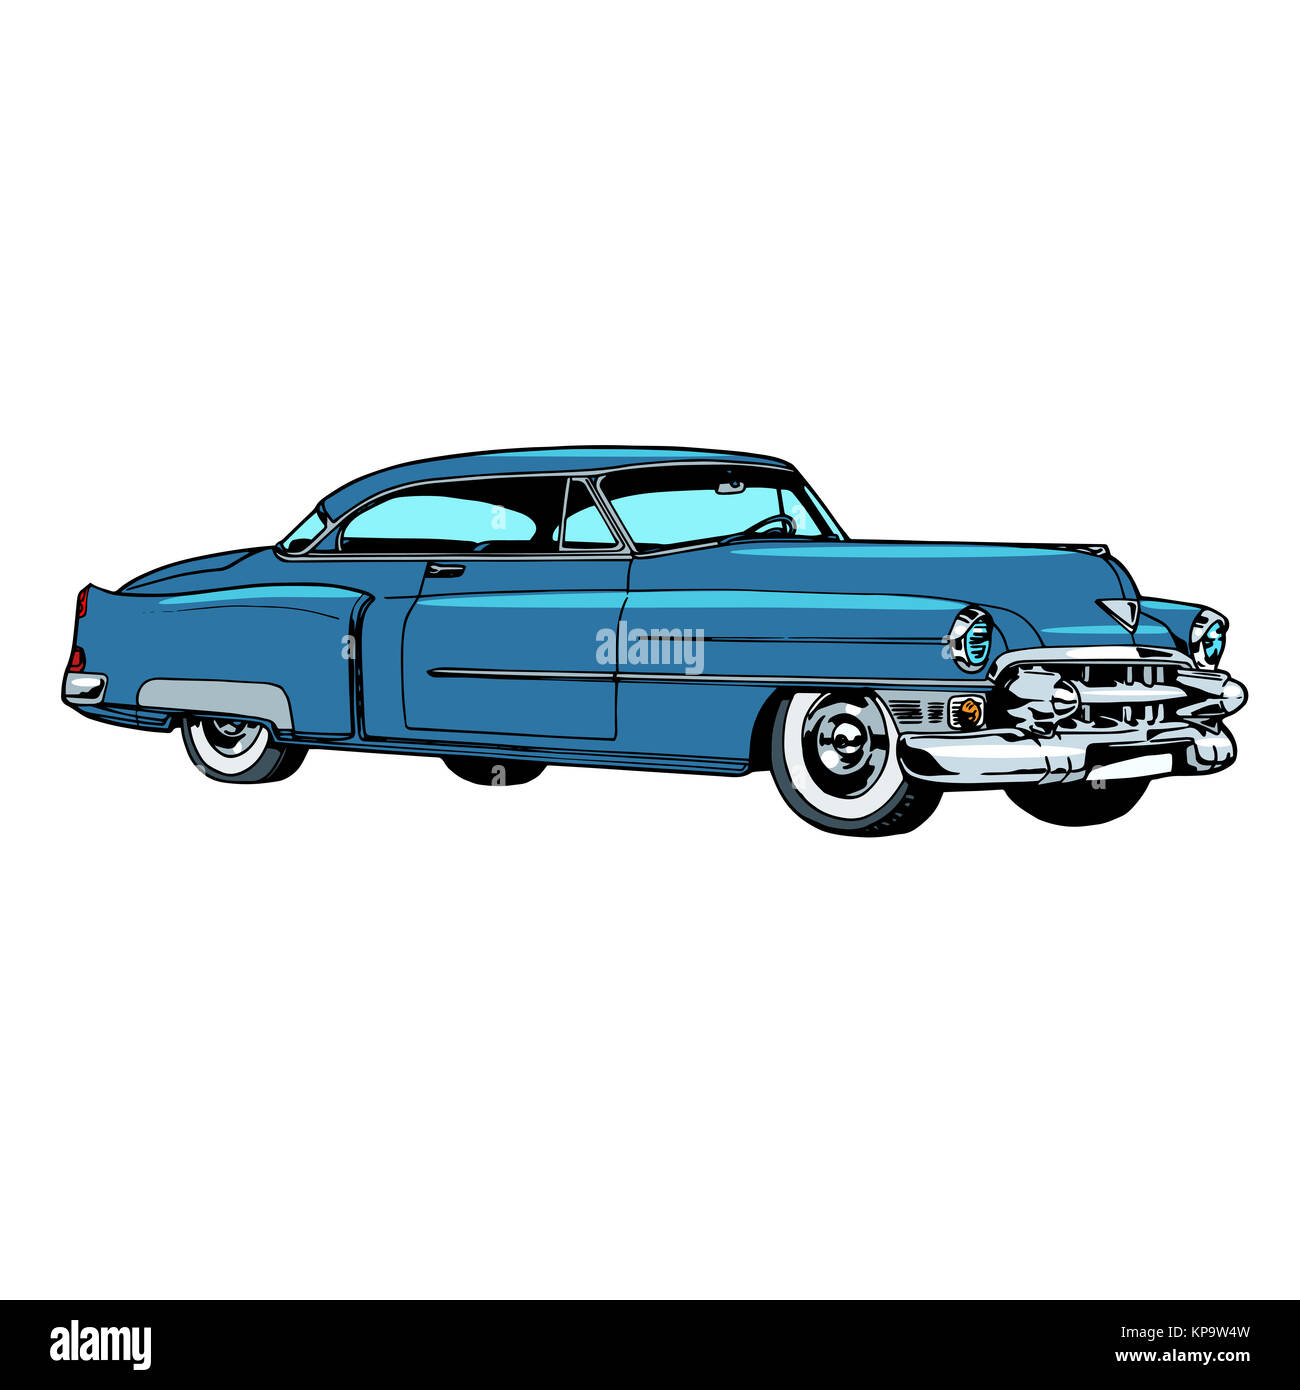 Retro blue car classic abstract model - Stock Image